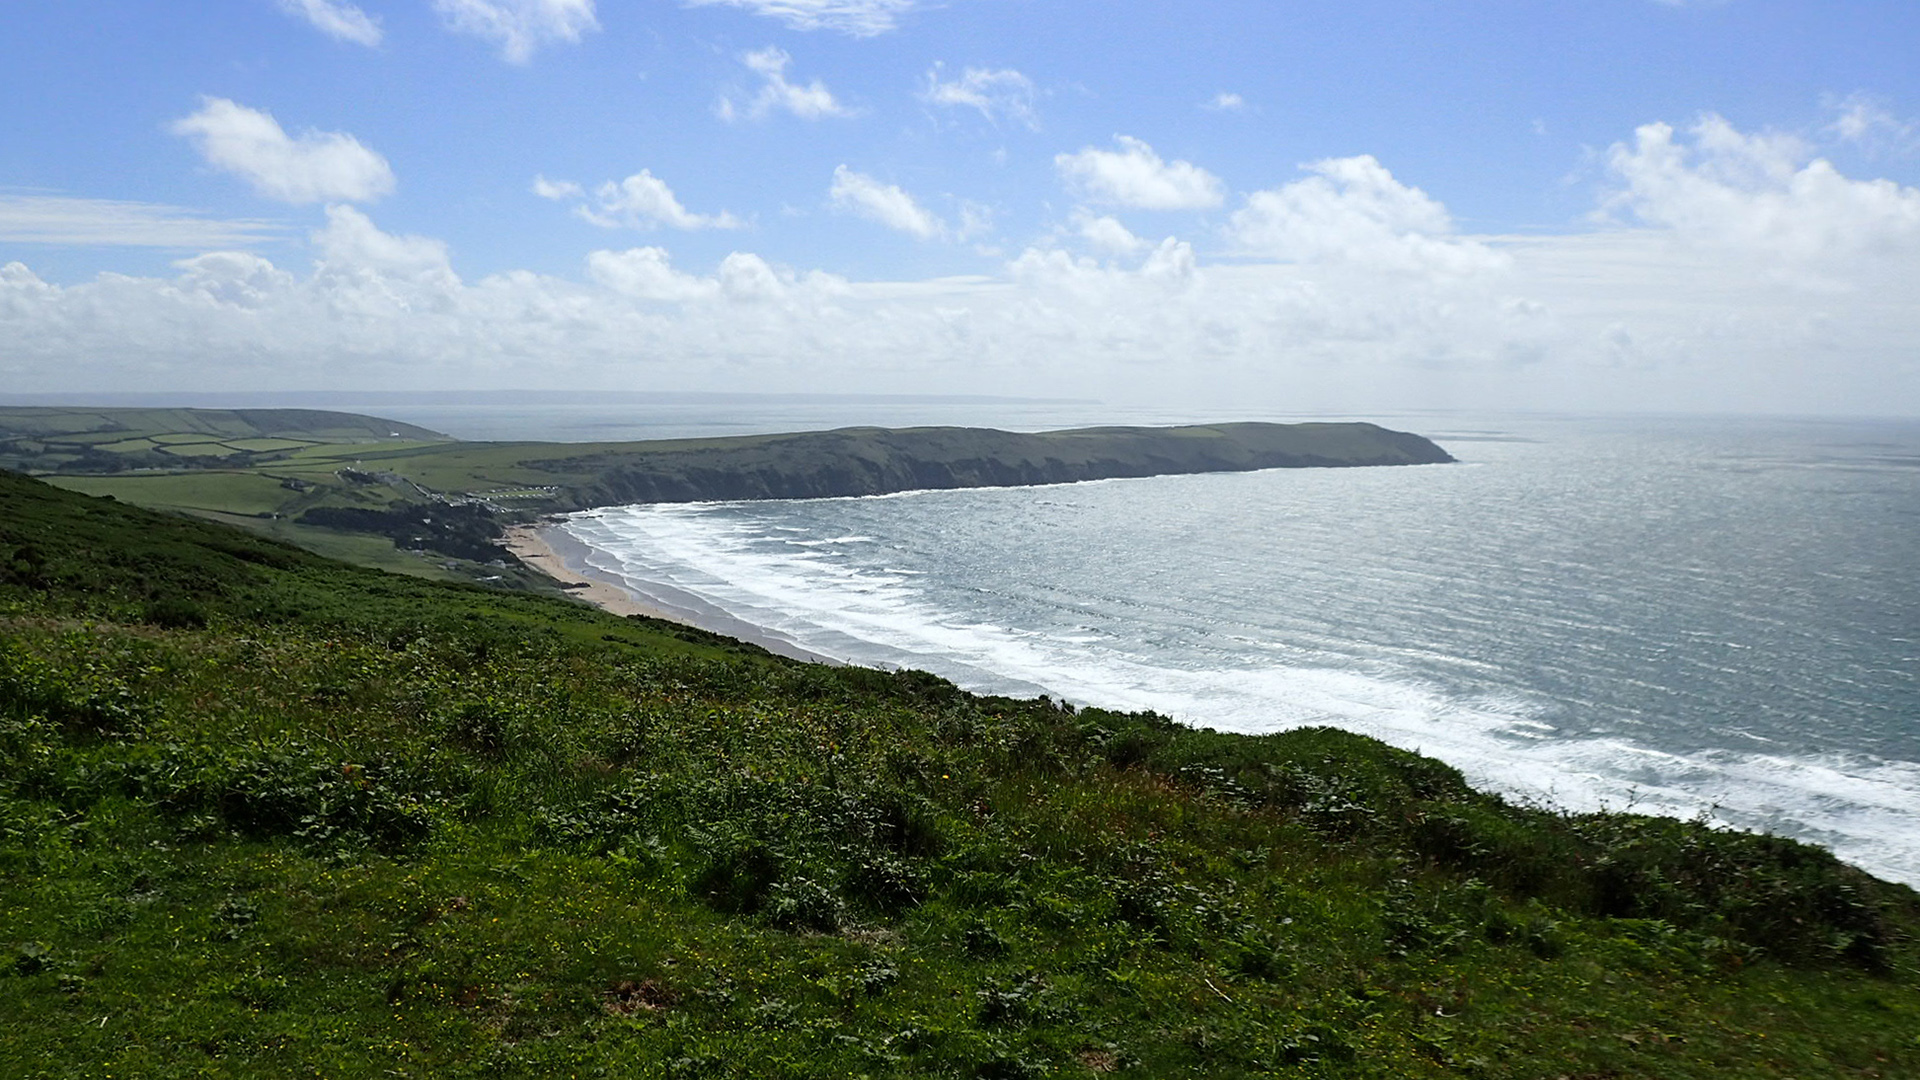 Looking over towards Putsborough and beyond. Hartland Point being in the very far distance